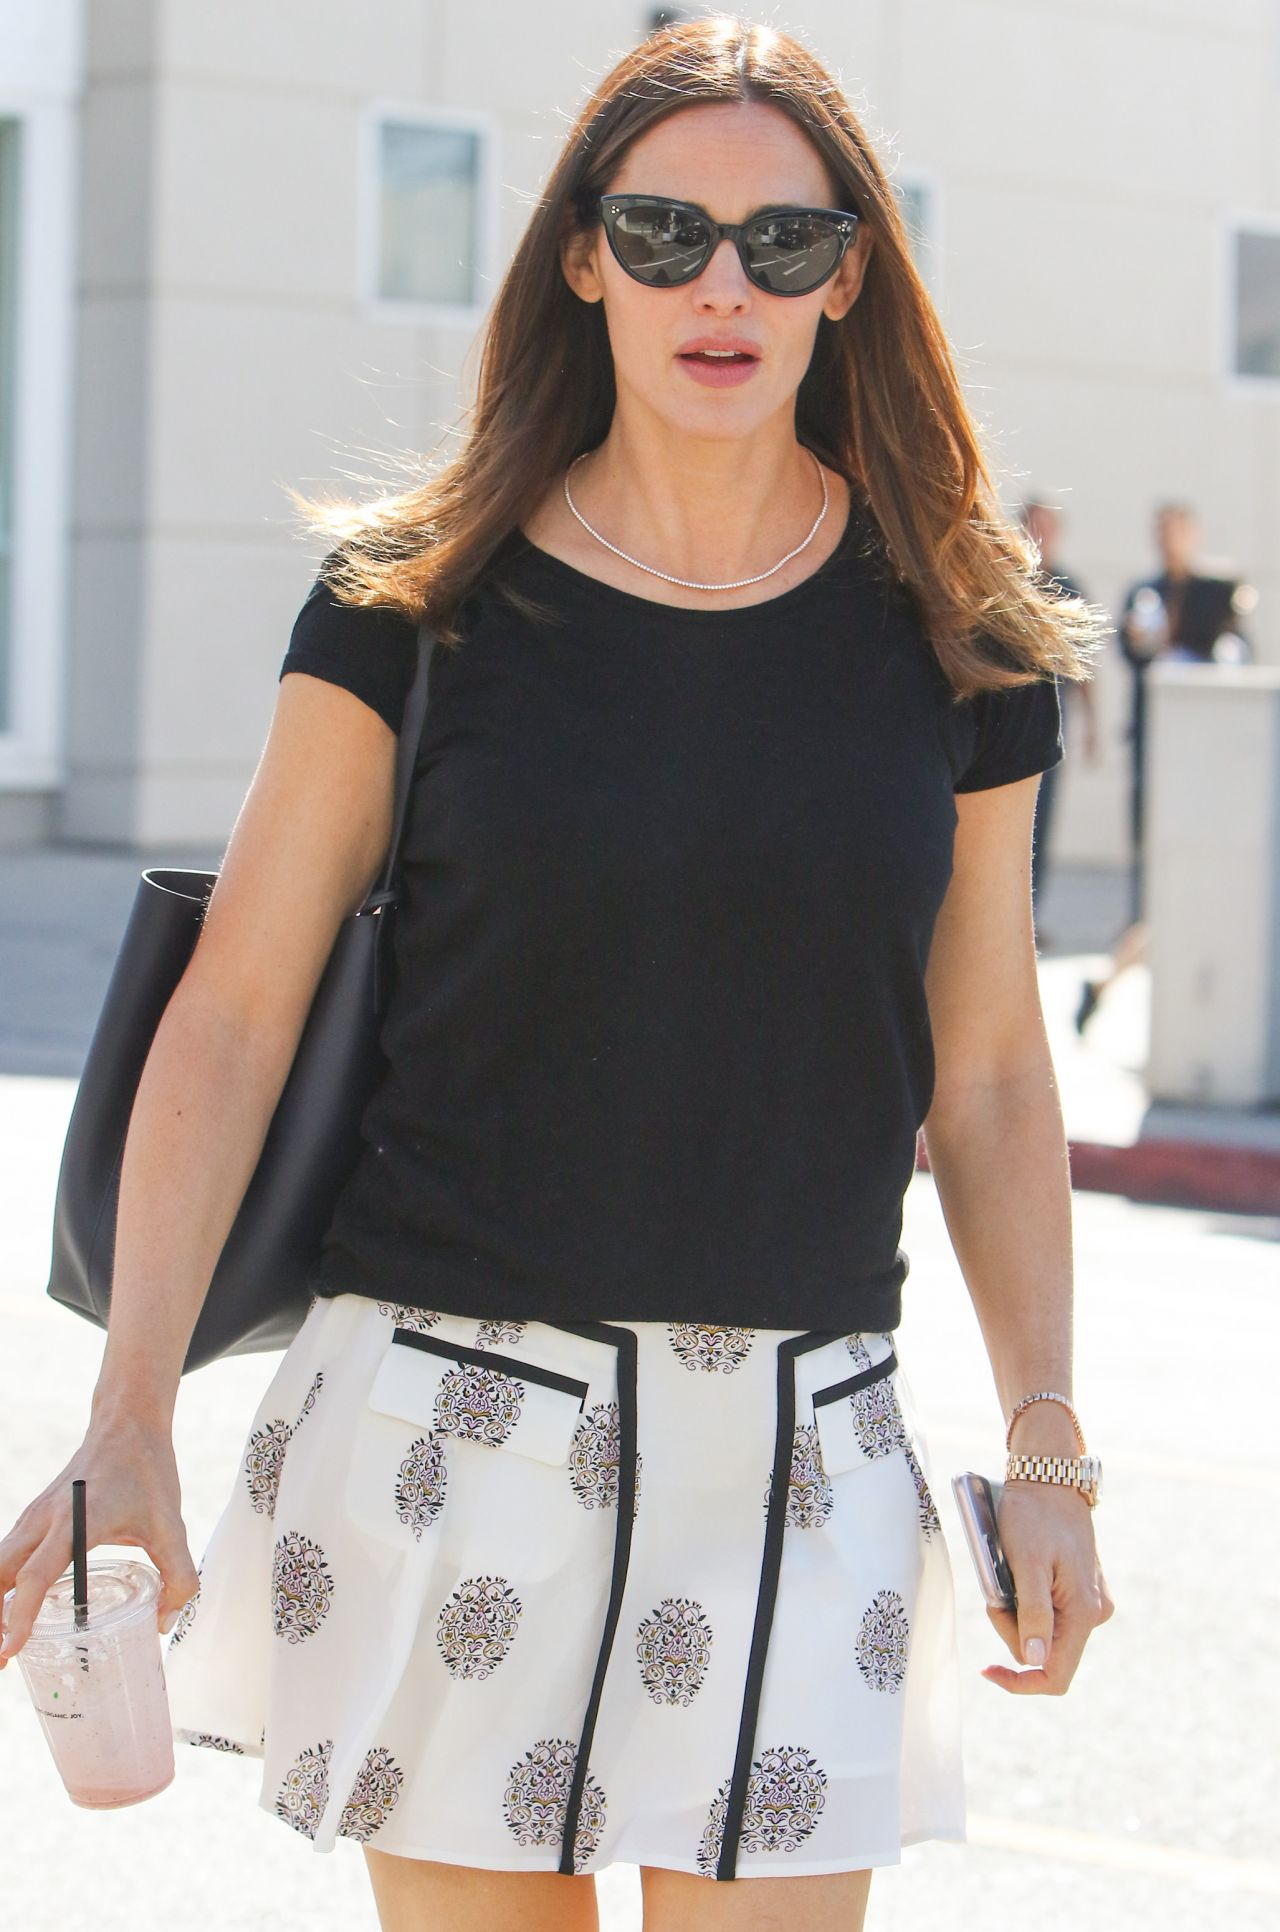 Jennifer Garner In Mini Skirt Out In Brentwood Ca 4 21 2017